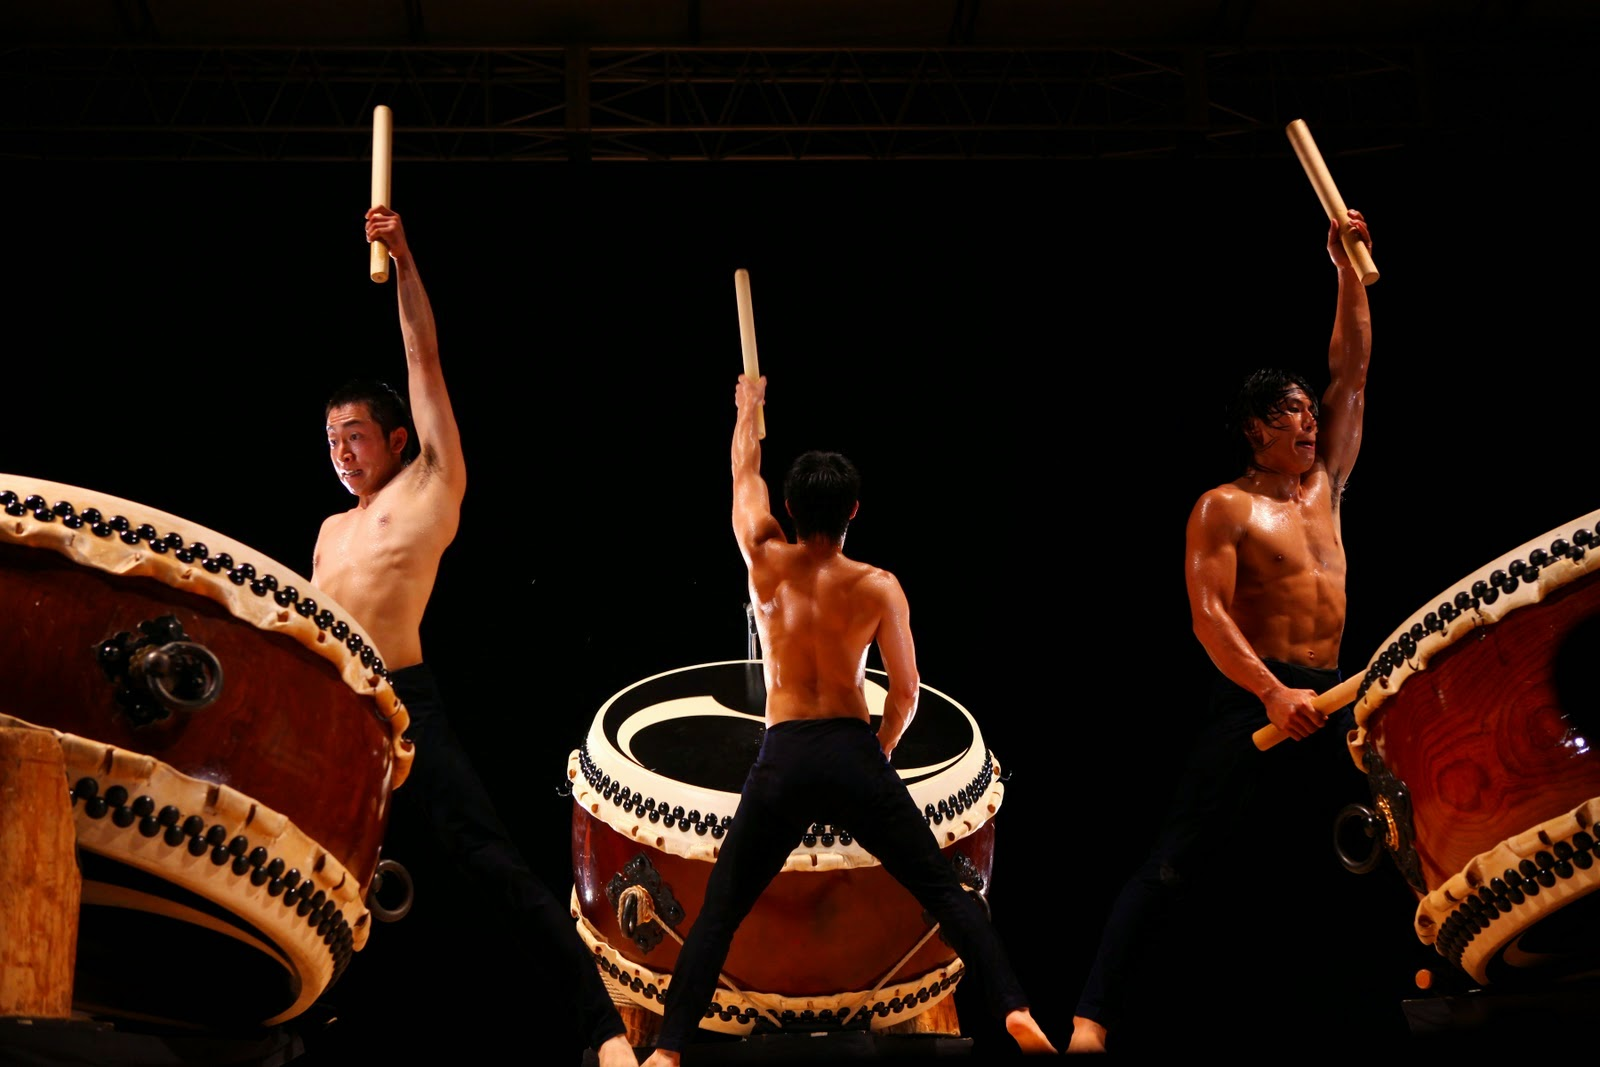 Japanese drummers photos 22